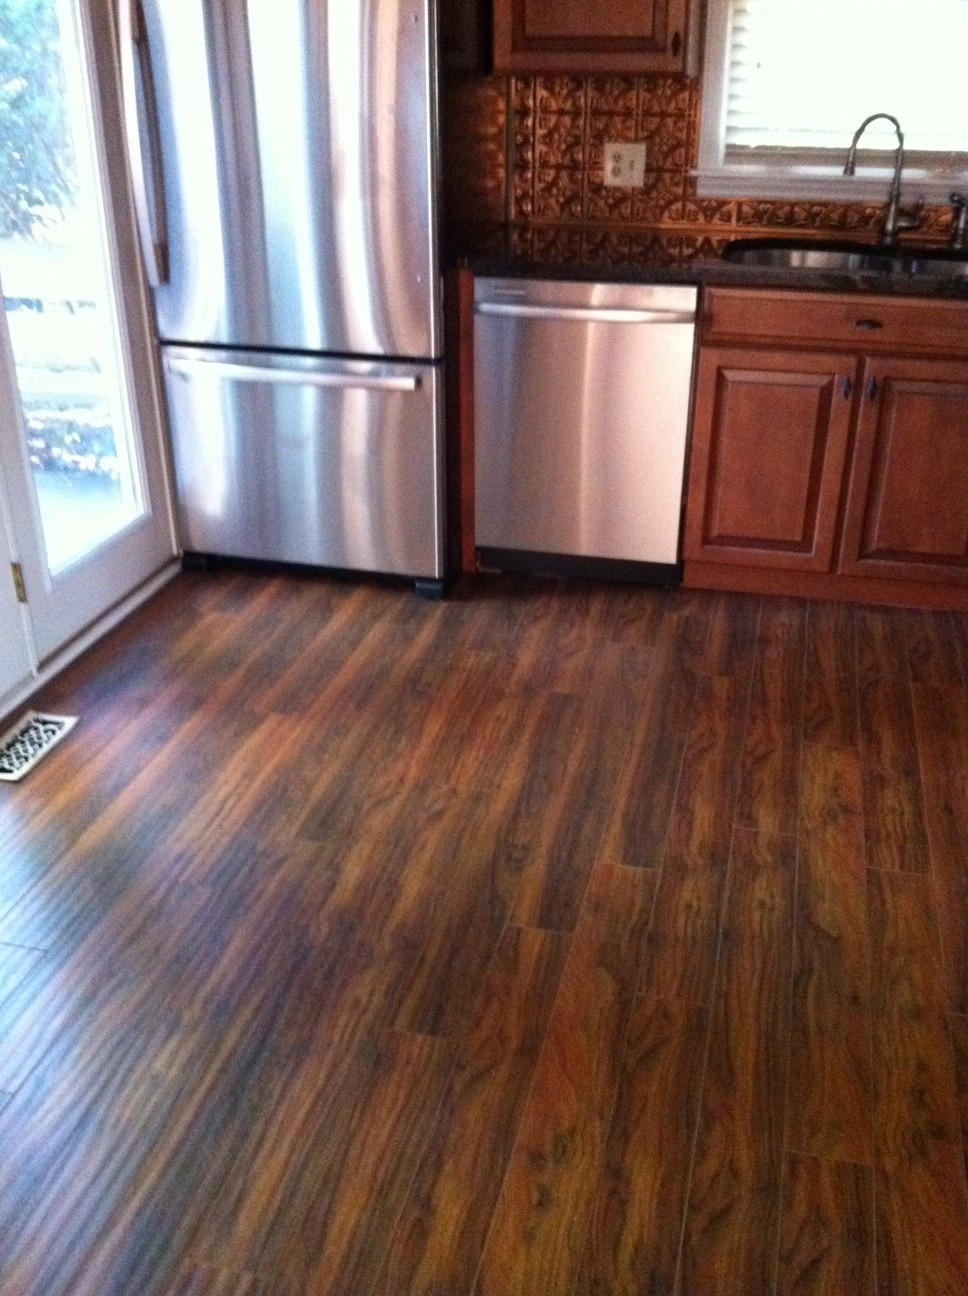 Laminate Wood Flooring In Kitchen Pros And Cons Best Kitchen - Hardwood floors in kitchen pros and cons